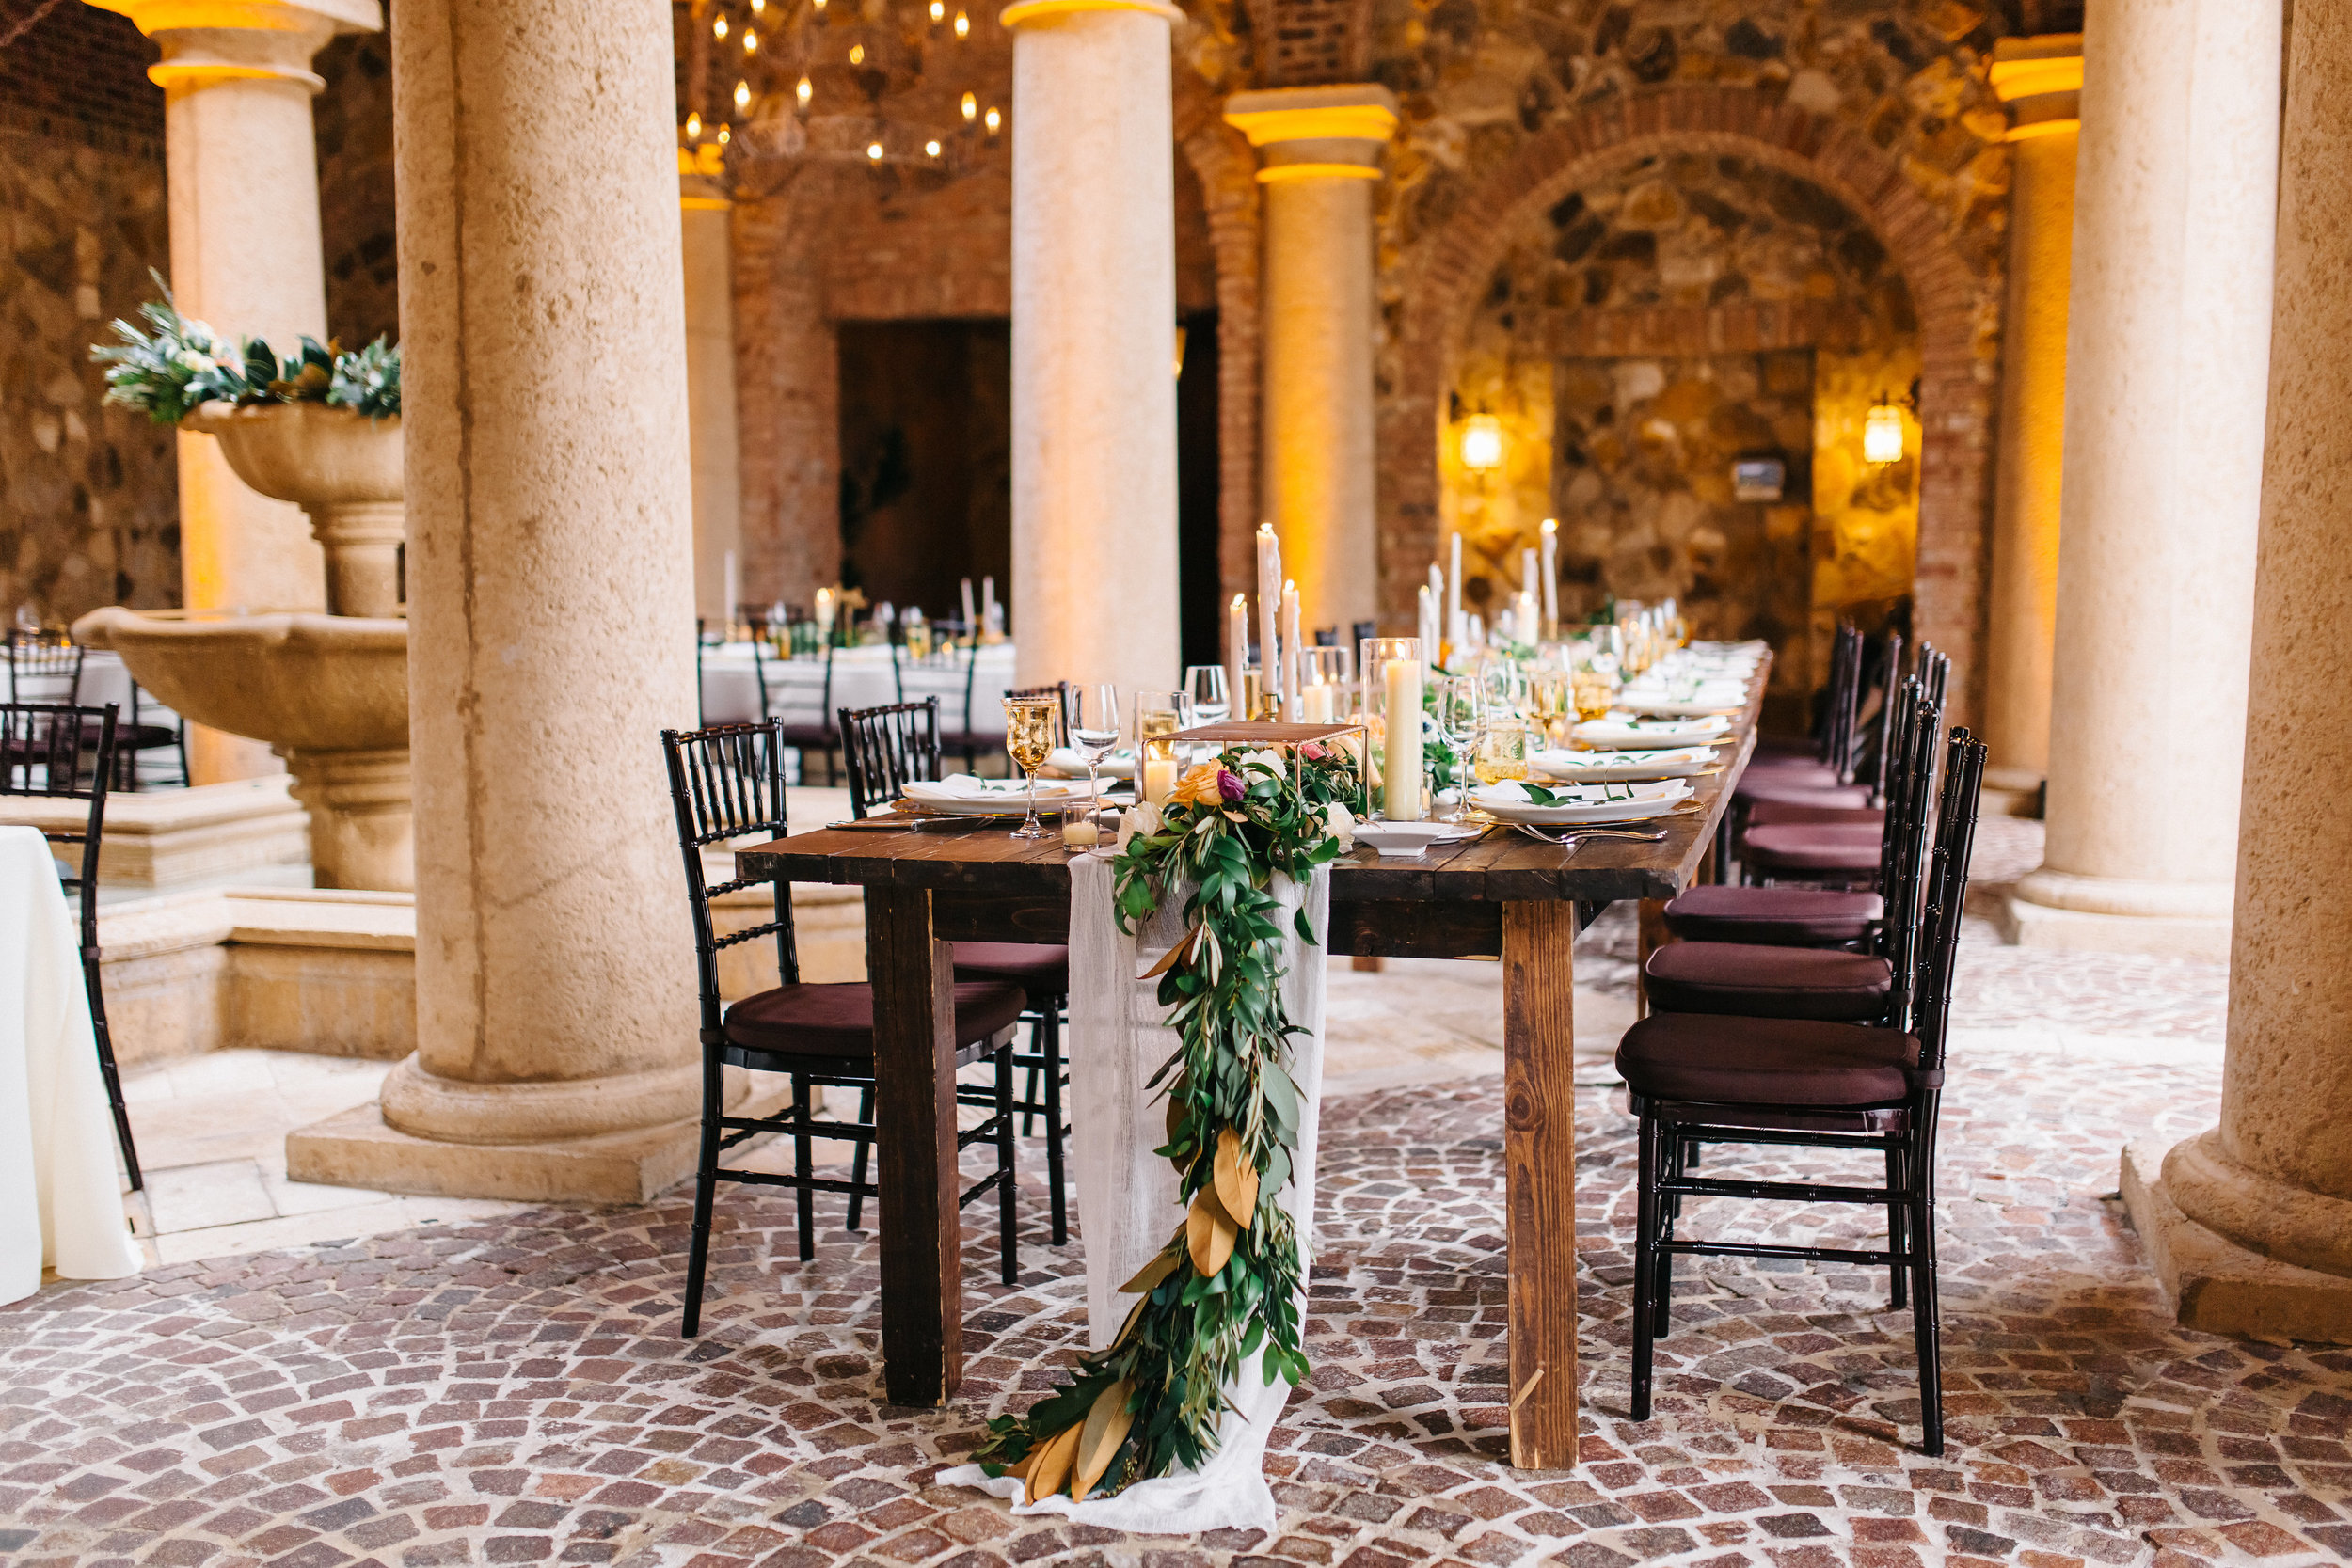 Candlelit tuscan inspired wedding reception with olive leaf and magnolia greenery  Tuscan inspired alfresco wedding reception with olive leaf and magnolia greenery  Orlando Wedding Planner Blue Ribbon Weddings  Orlando Wedding Photographer Emma Shourds Photography  Wedding Ceremony at Bell Tower at Bella Collina  Wedding Reception in Atrium at Bella Collina